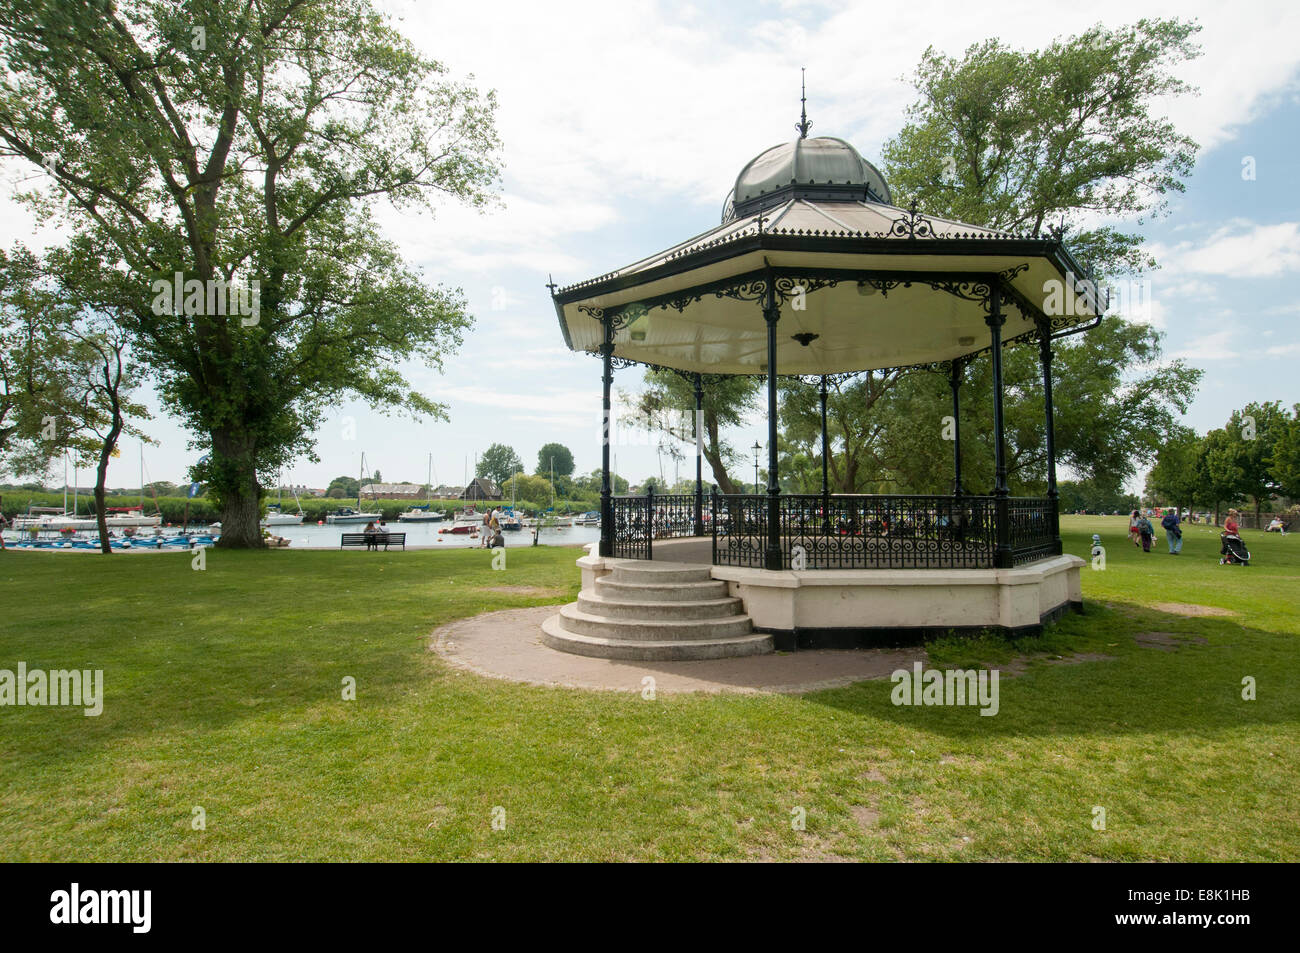 The Bandstand, The Quomps, Christchurch Quay, Christchurch, Dorset, England, - Stock Image